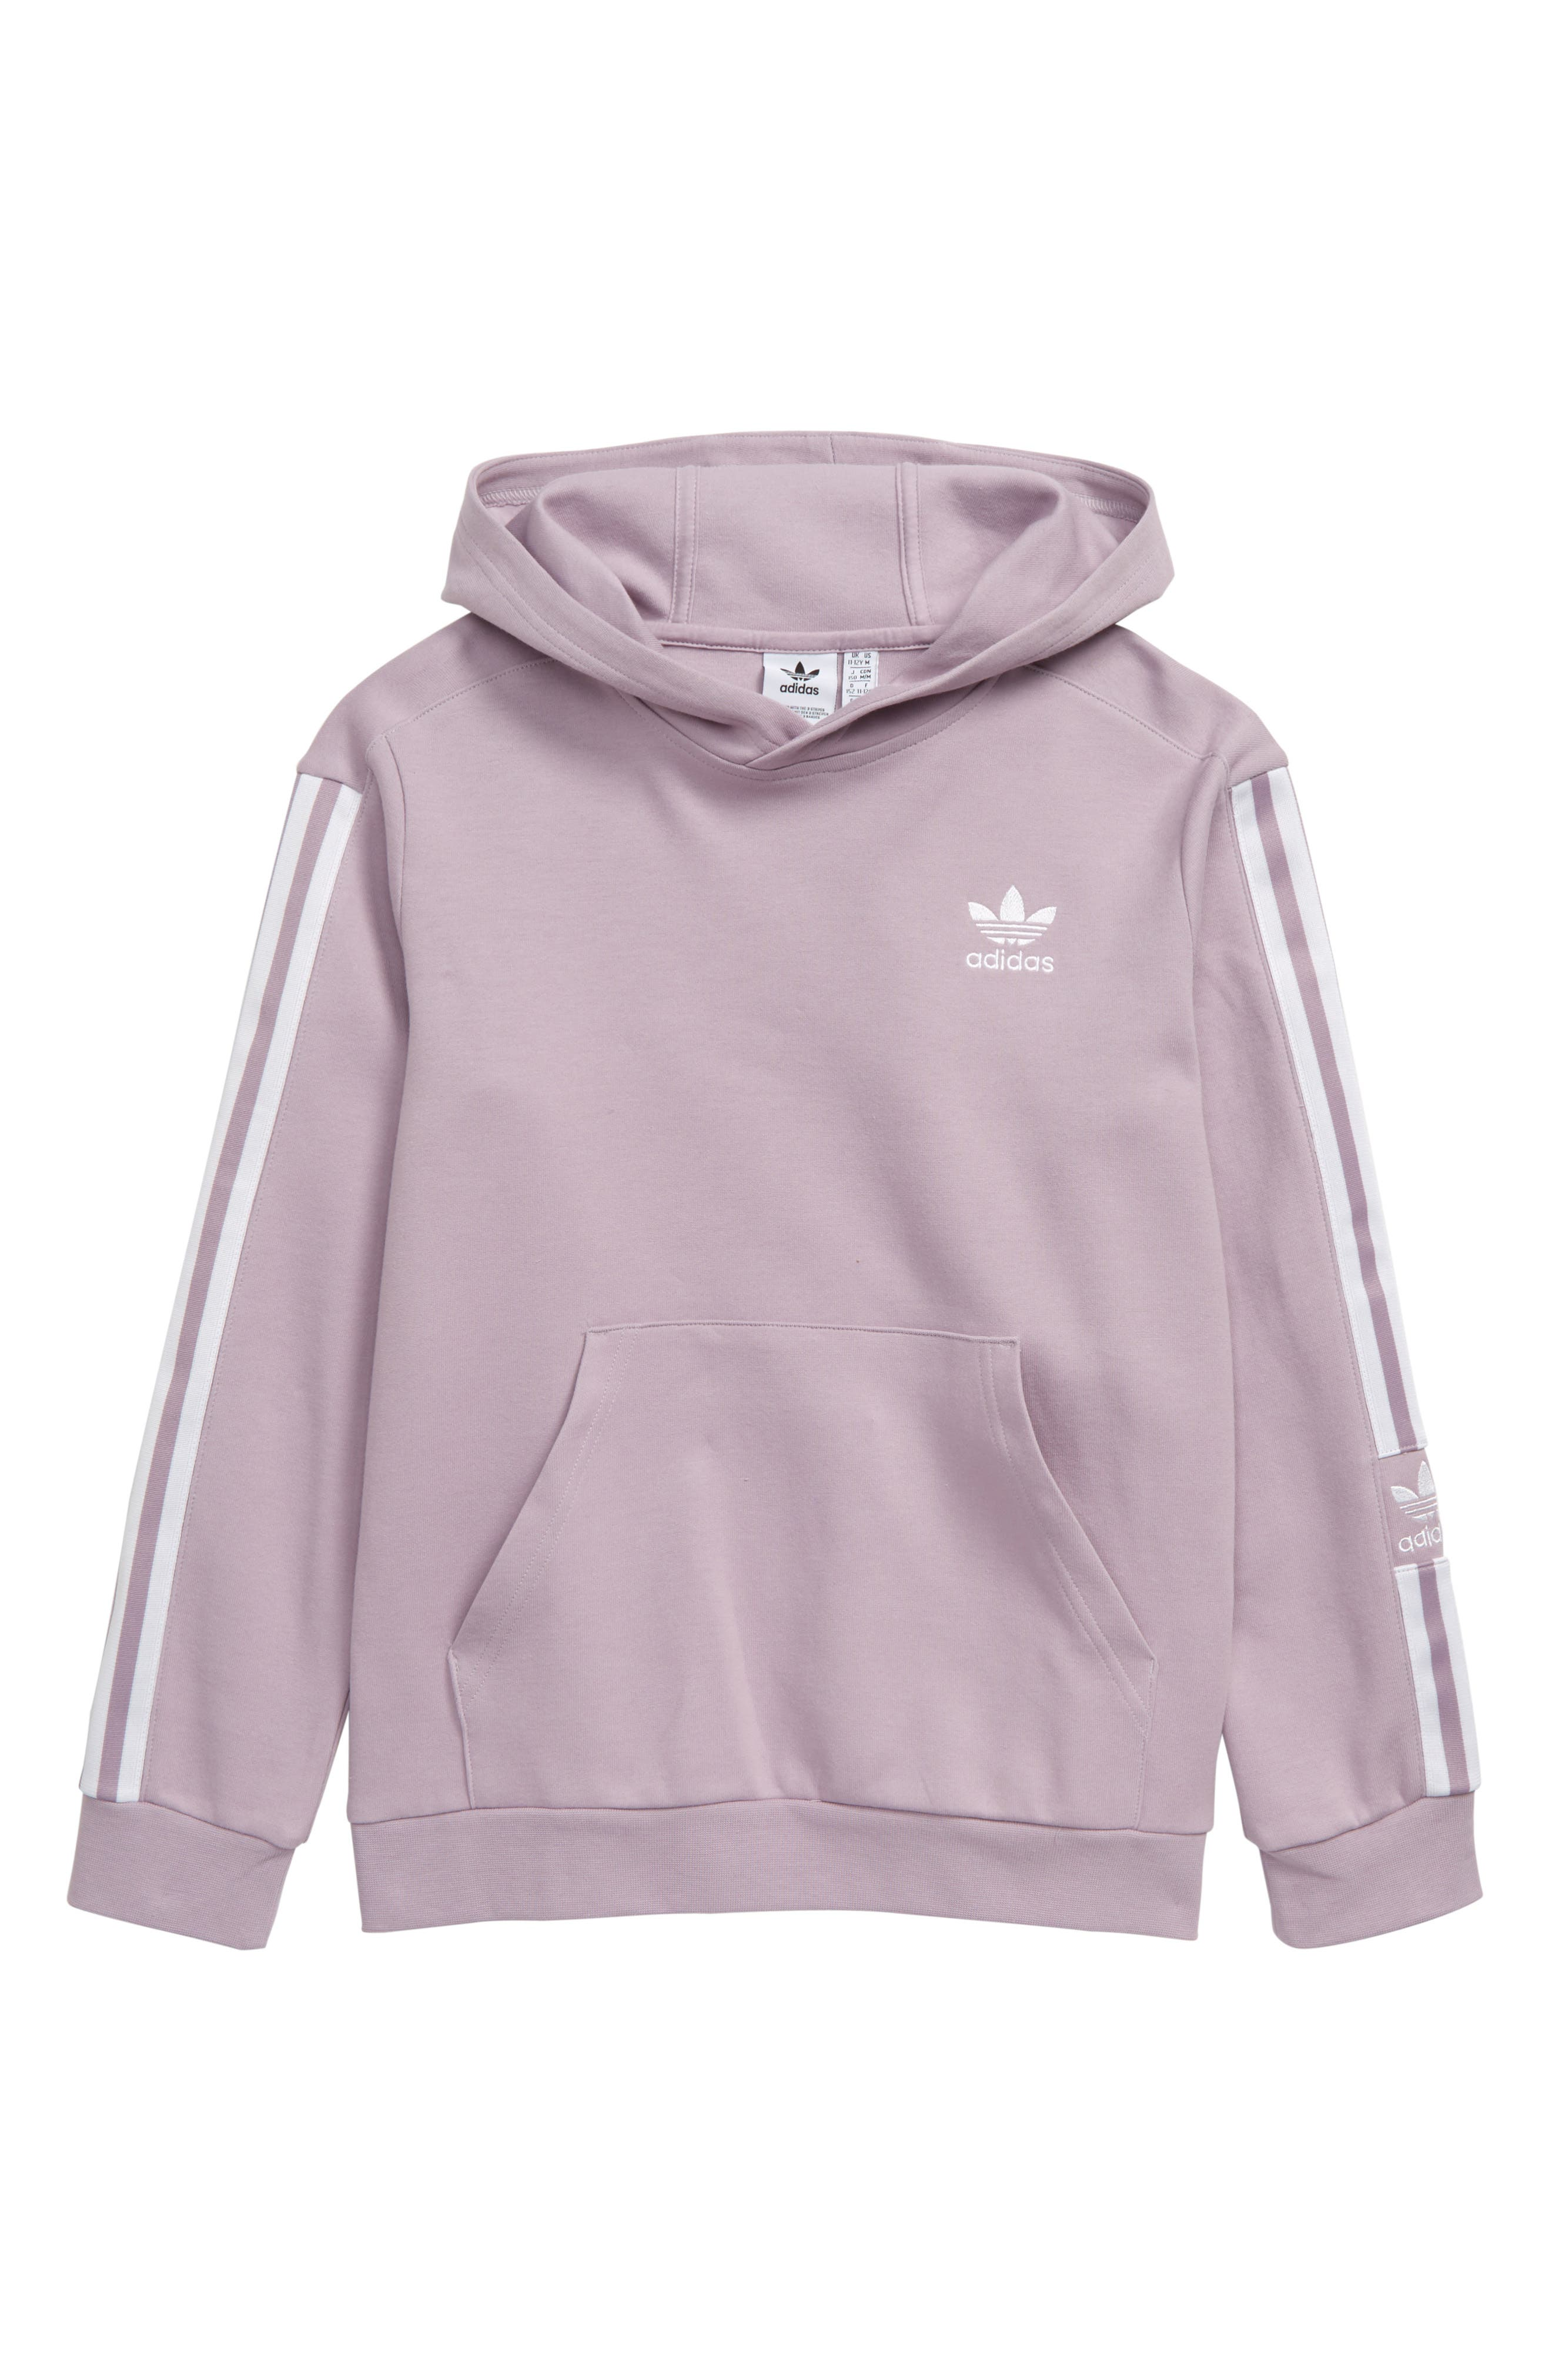 adidas hoodie for girls